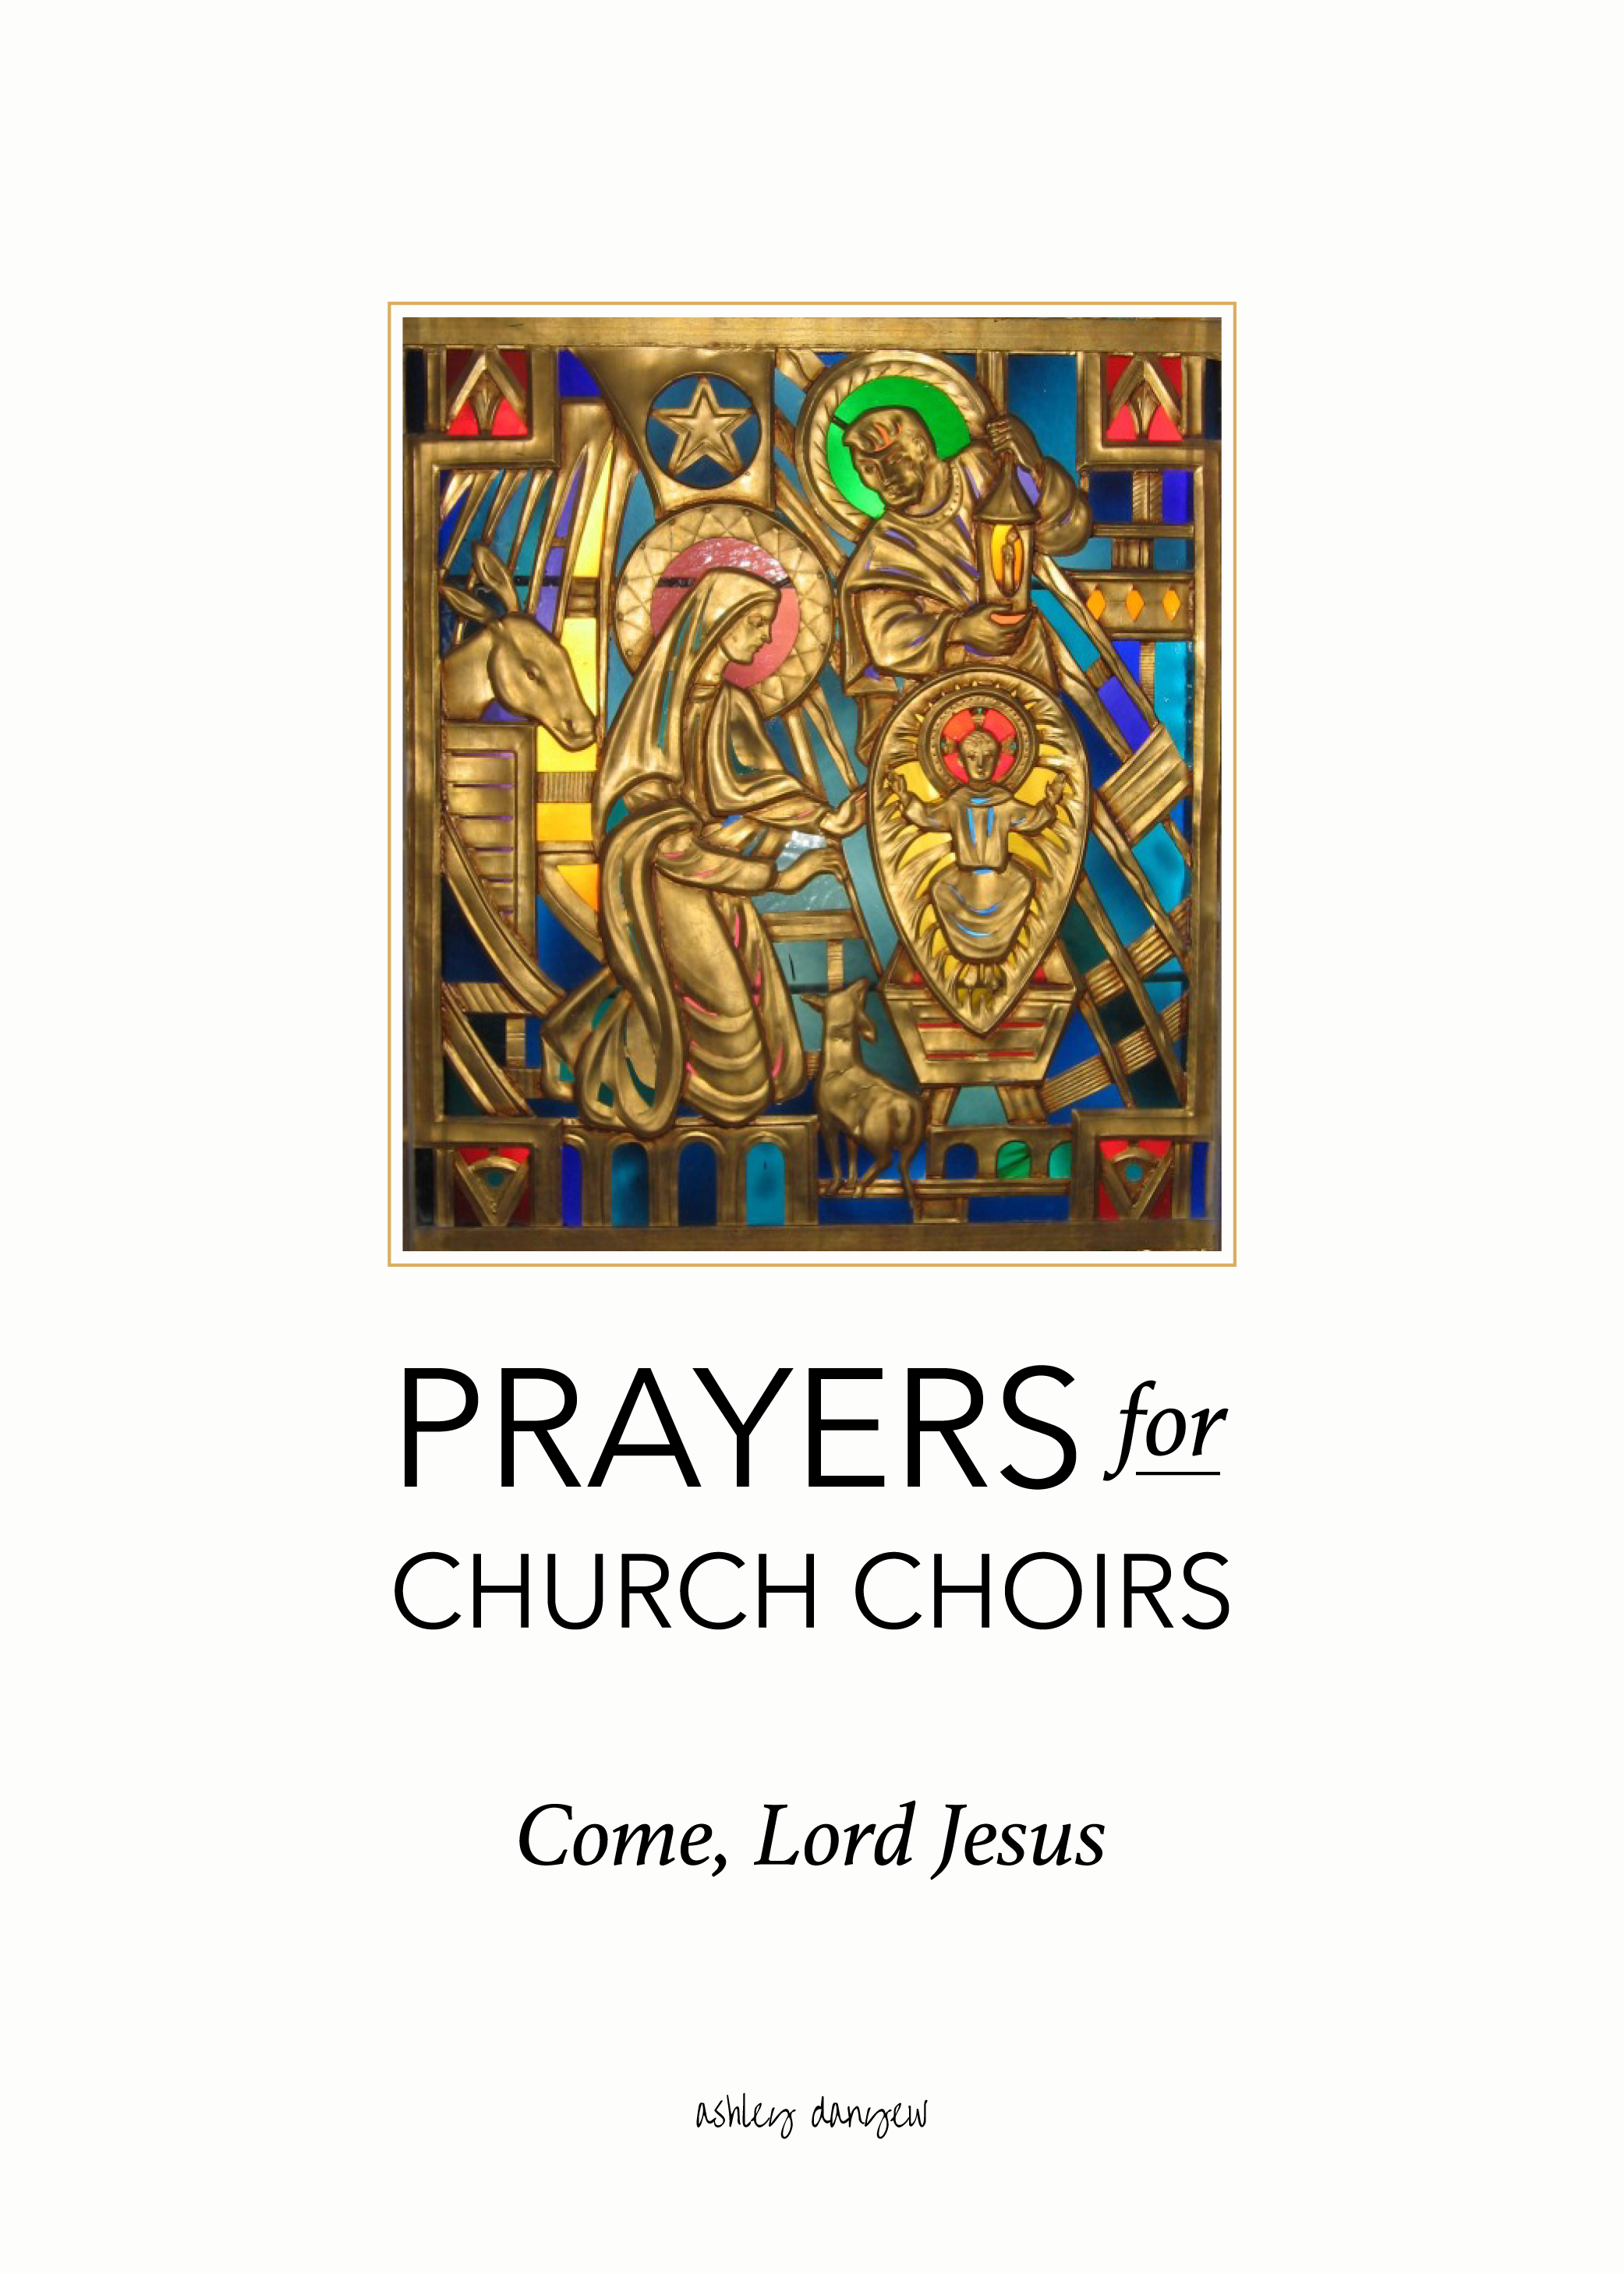 Copy of Prayers for Church Choirs: Come, Lord Jesus